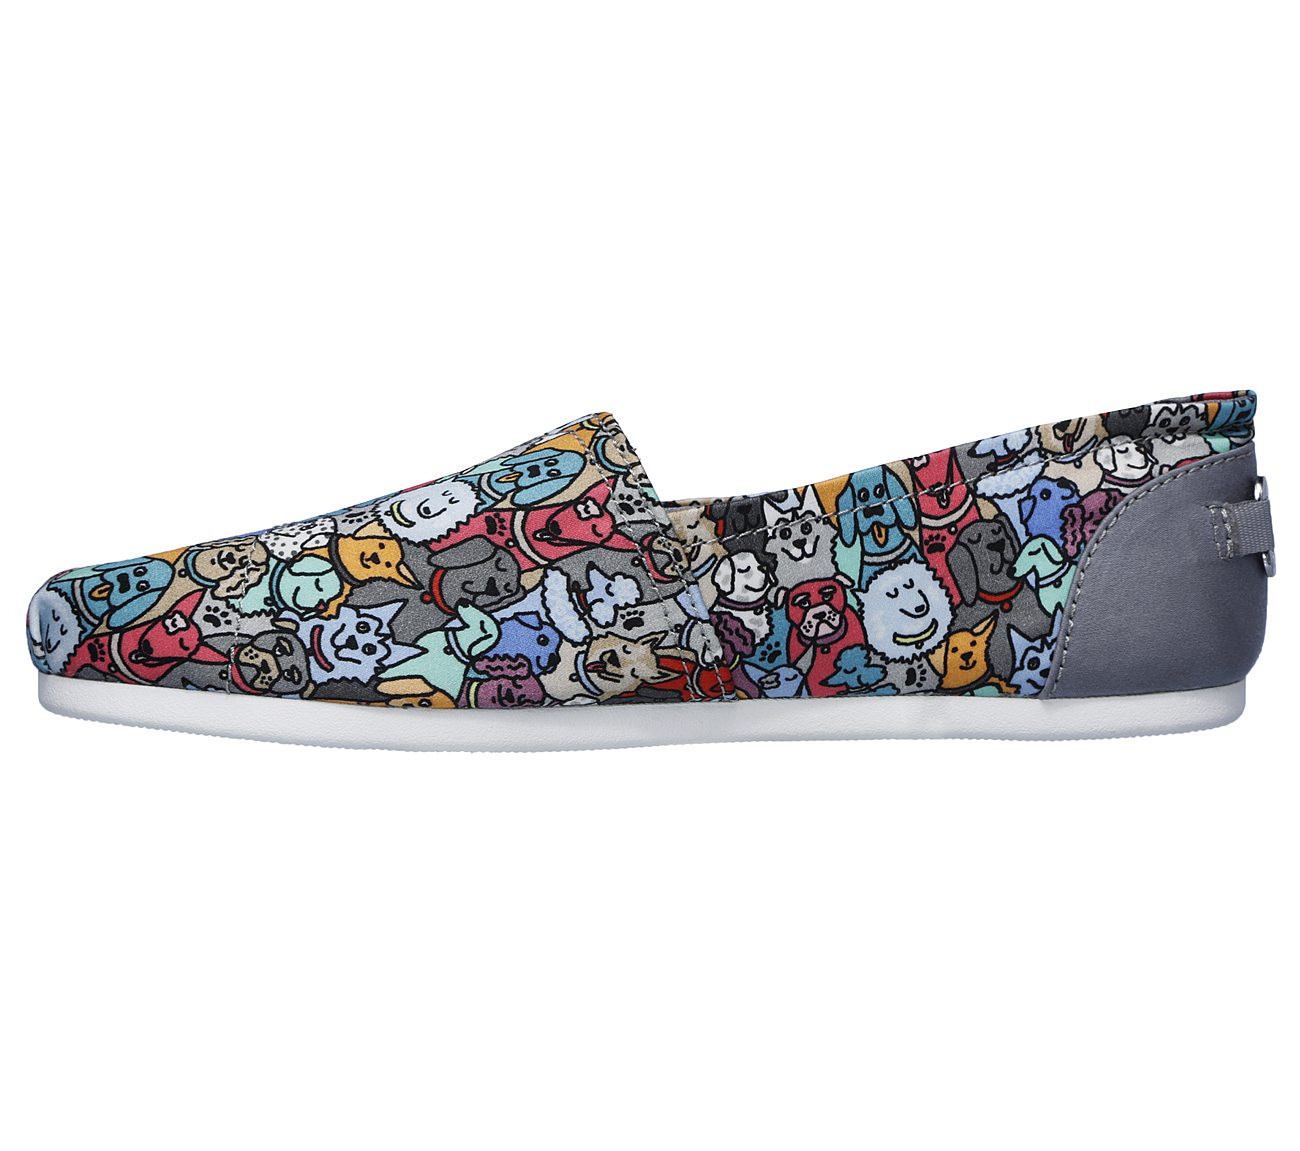 35ecc96e483d Buy SKECHERS BOBS Plush - Woof Party SKECHERS Bobs Shoes only £39.00